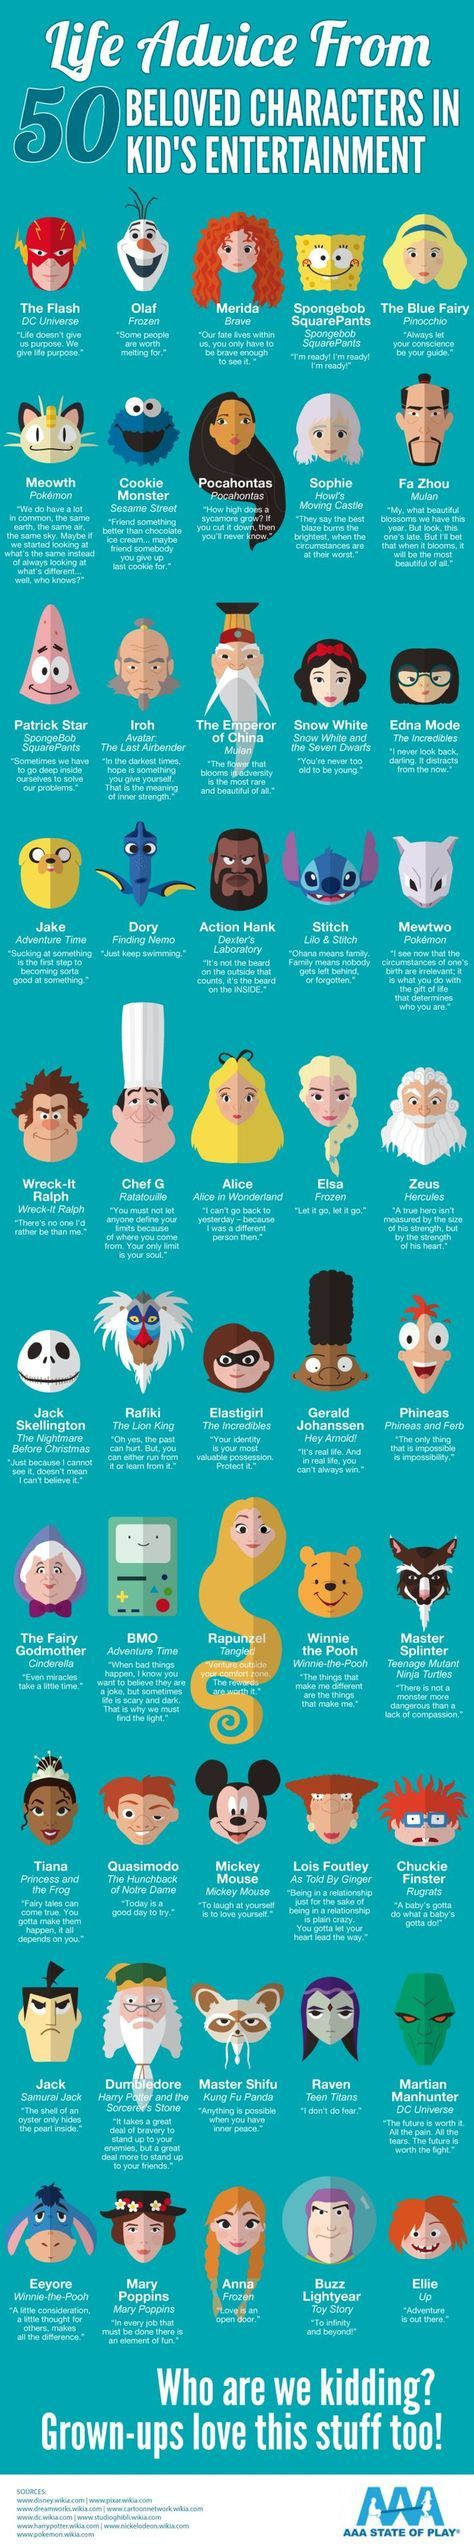 Sunday Funday Cartoon Characters Quotes Disney Quotes Character Quotes